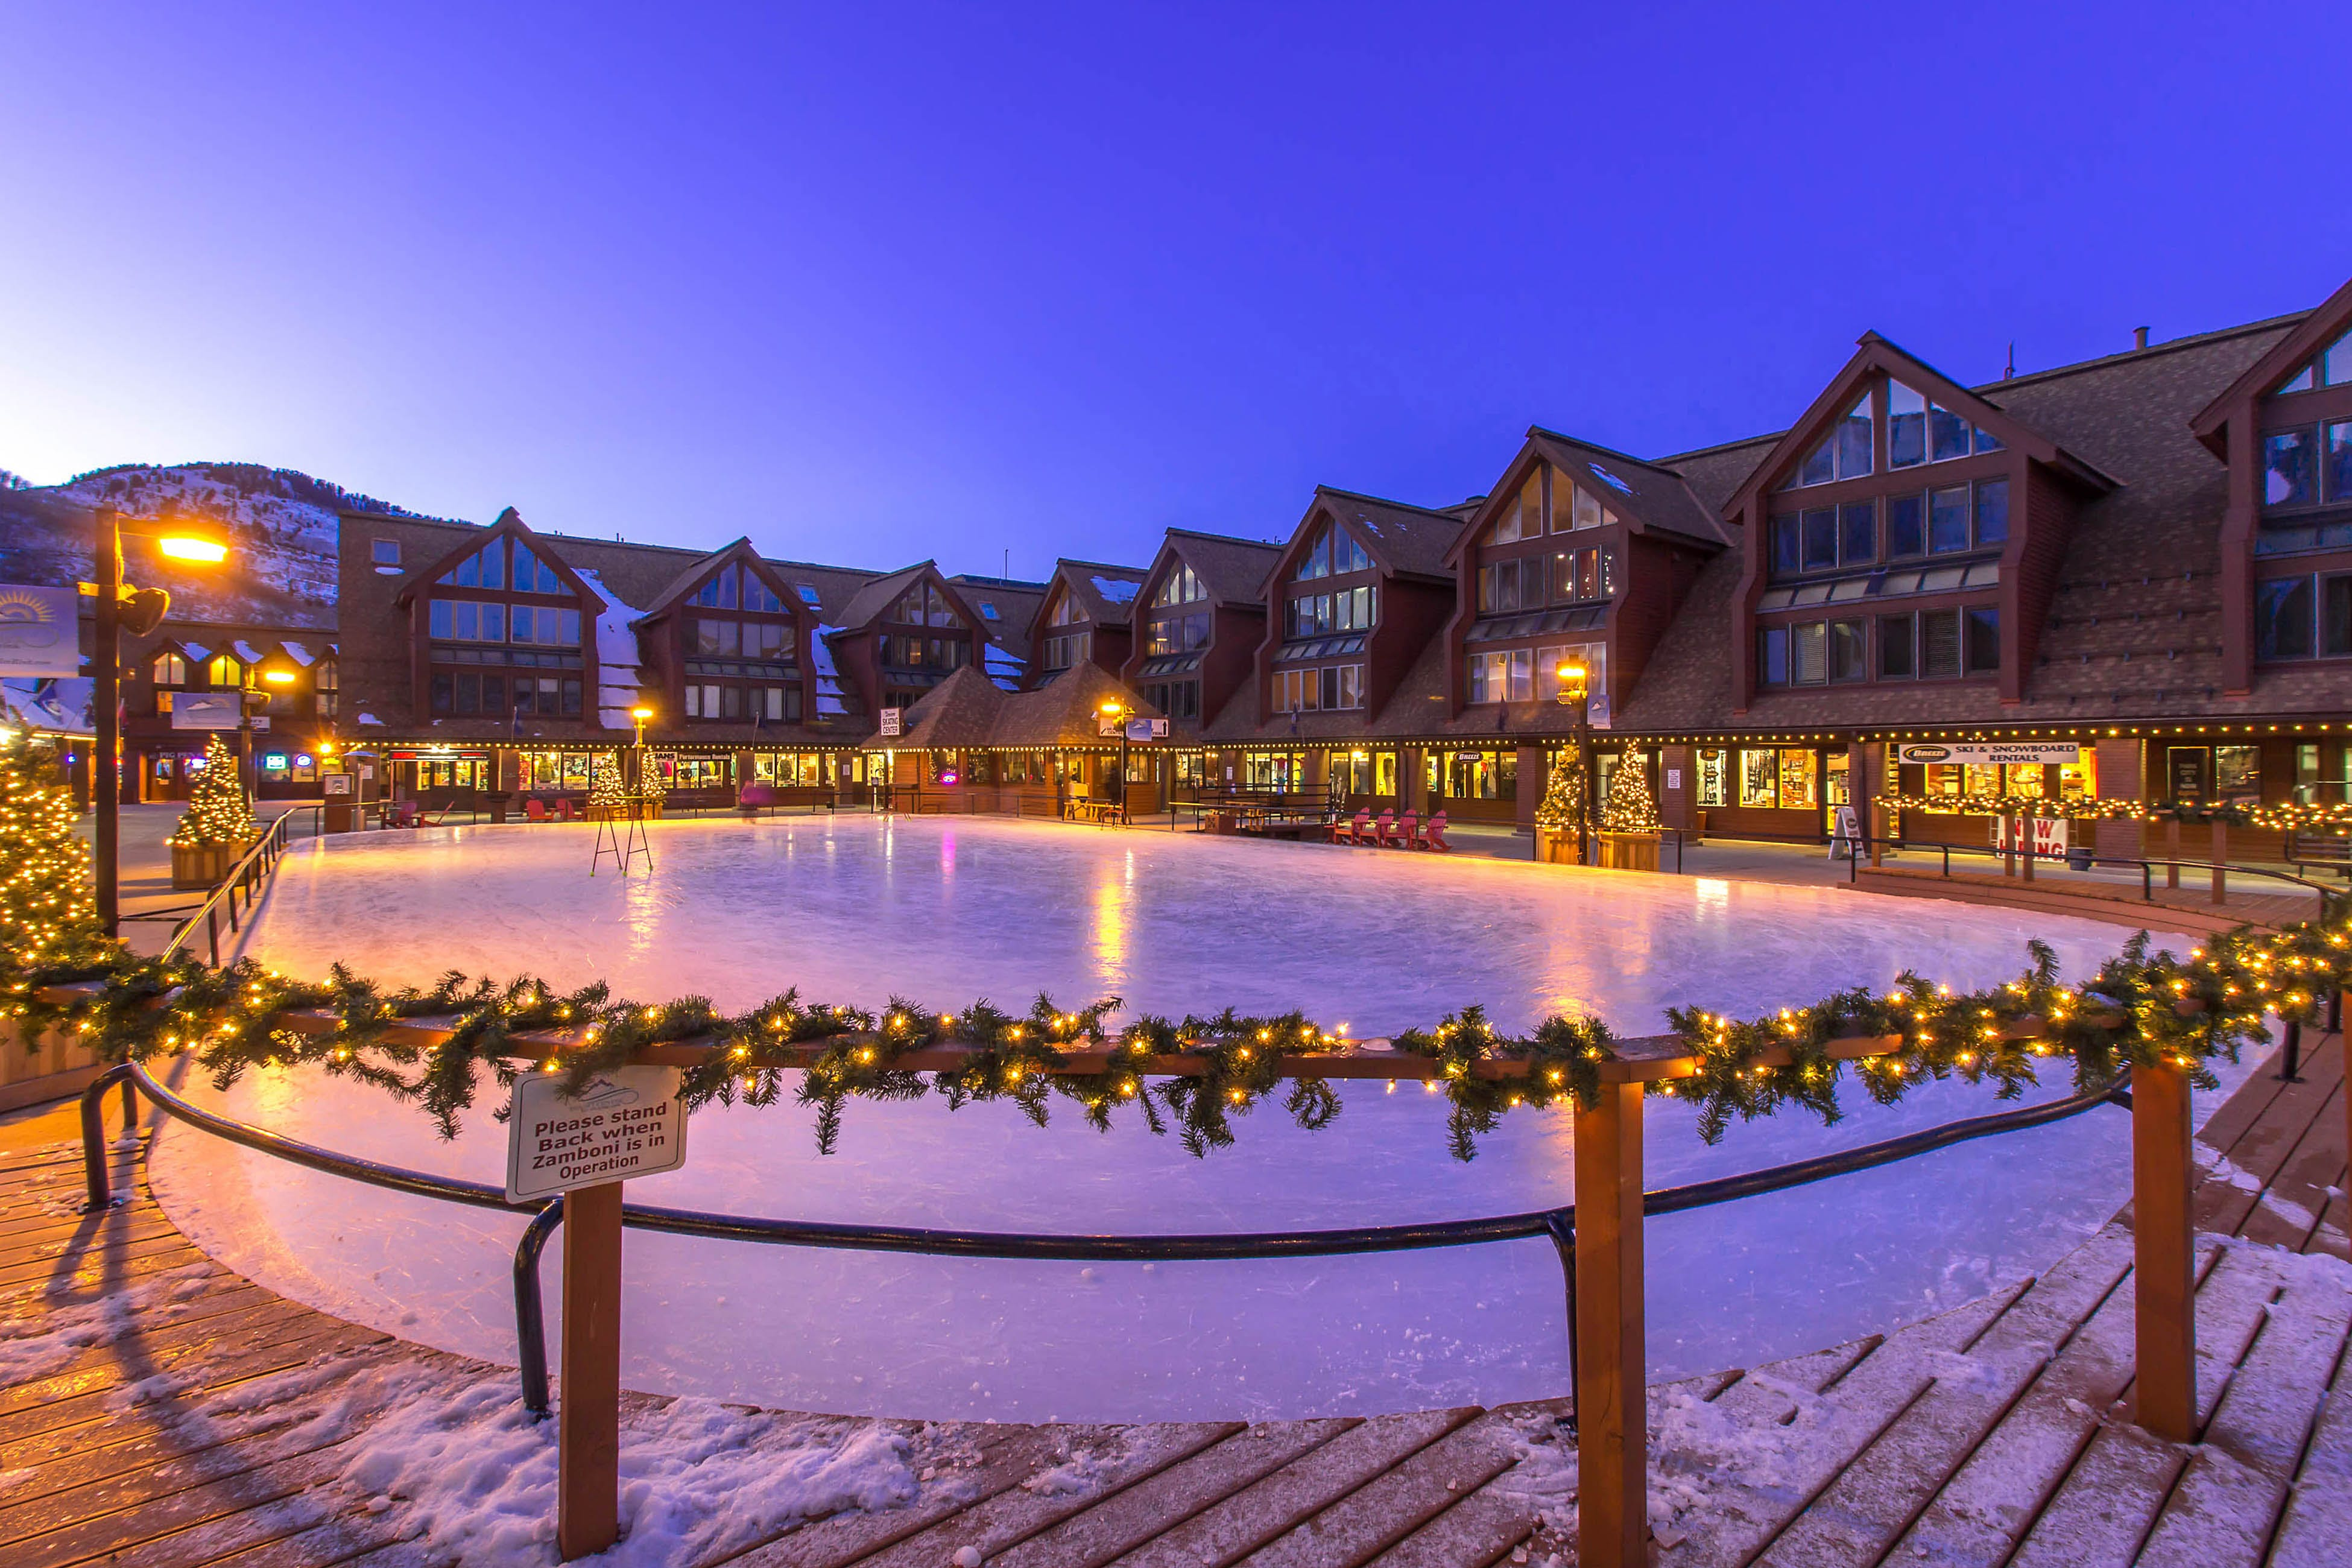 Night time view of the lit up ice skating rink in Park City, Utah